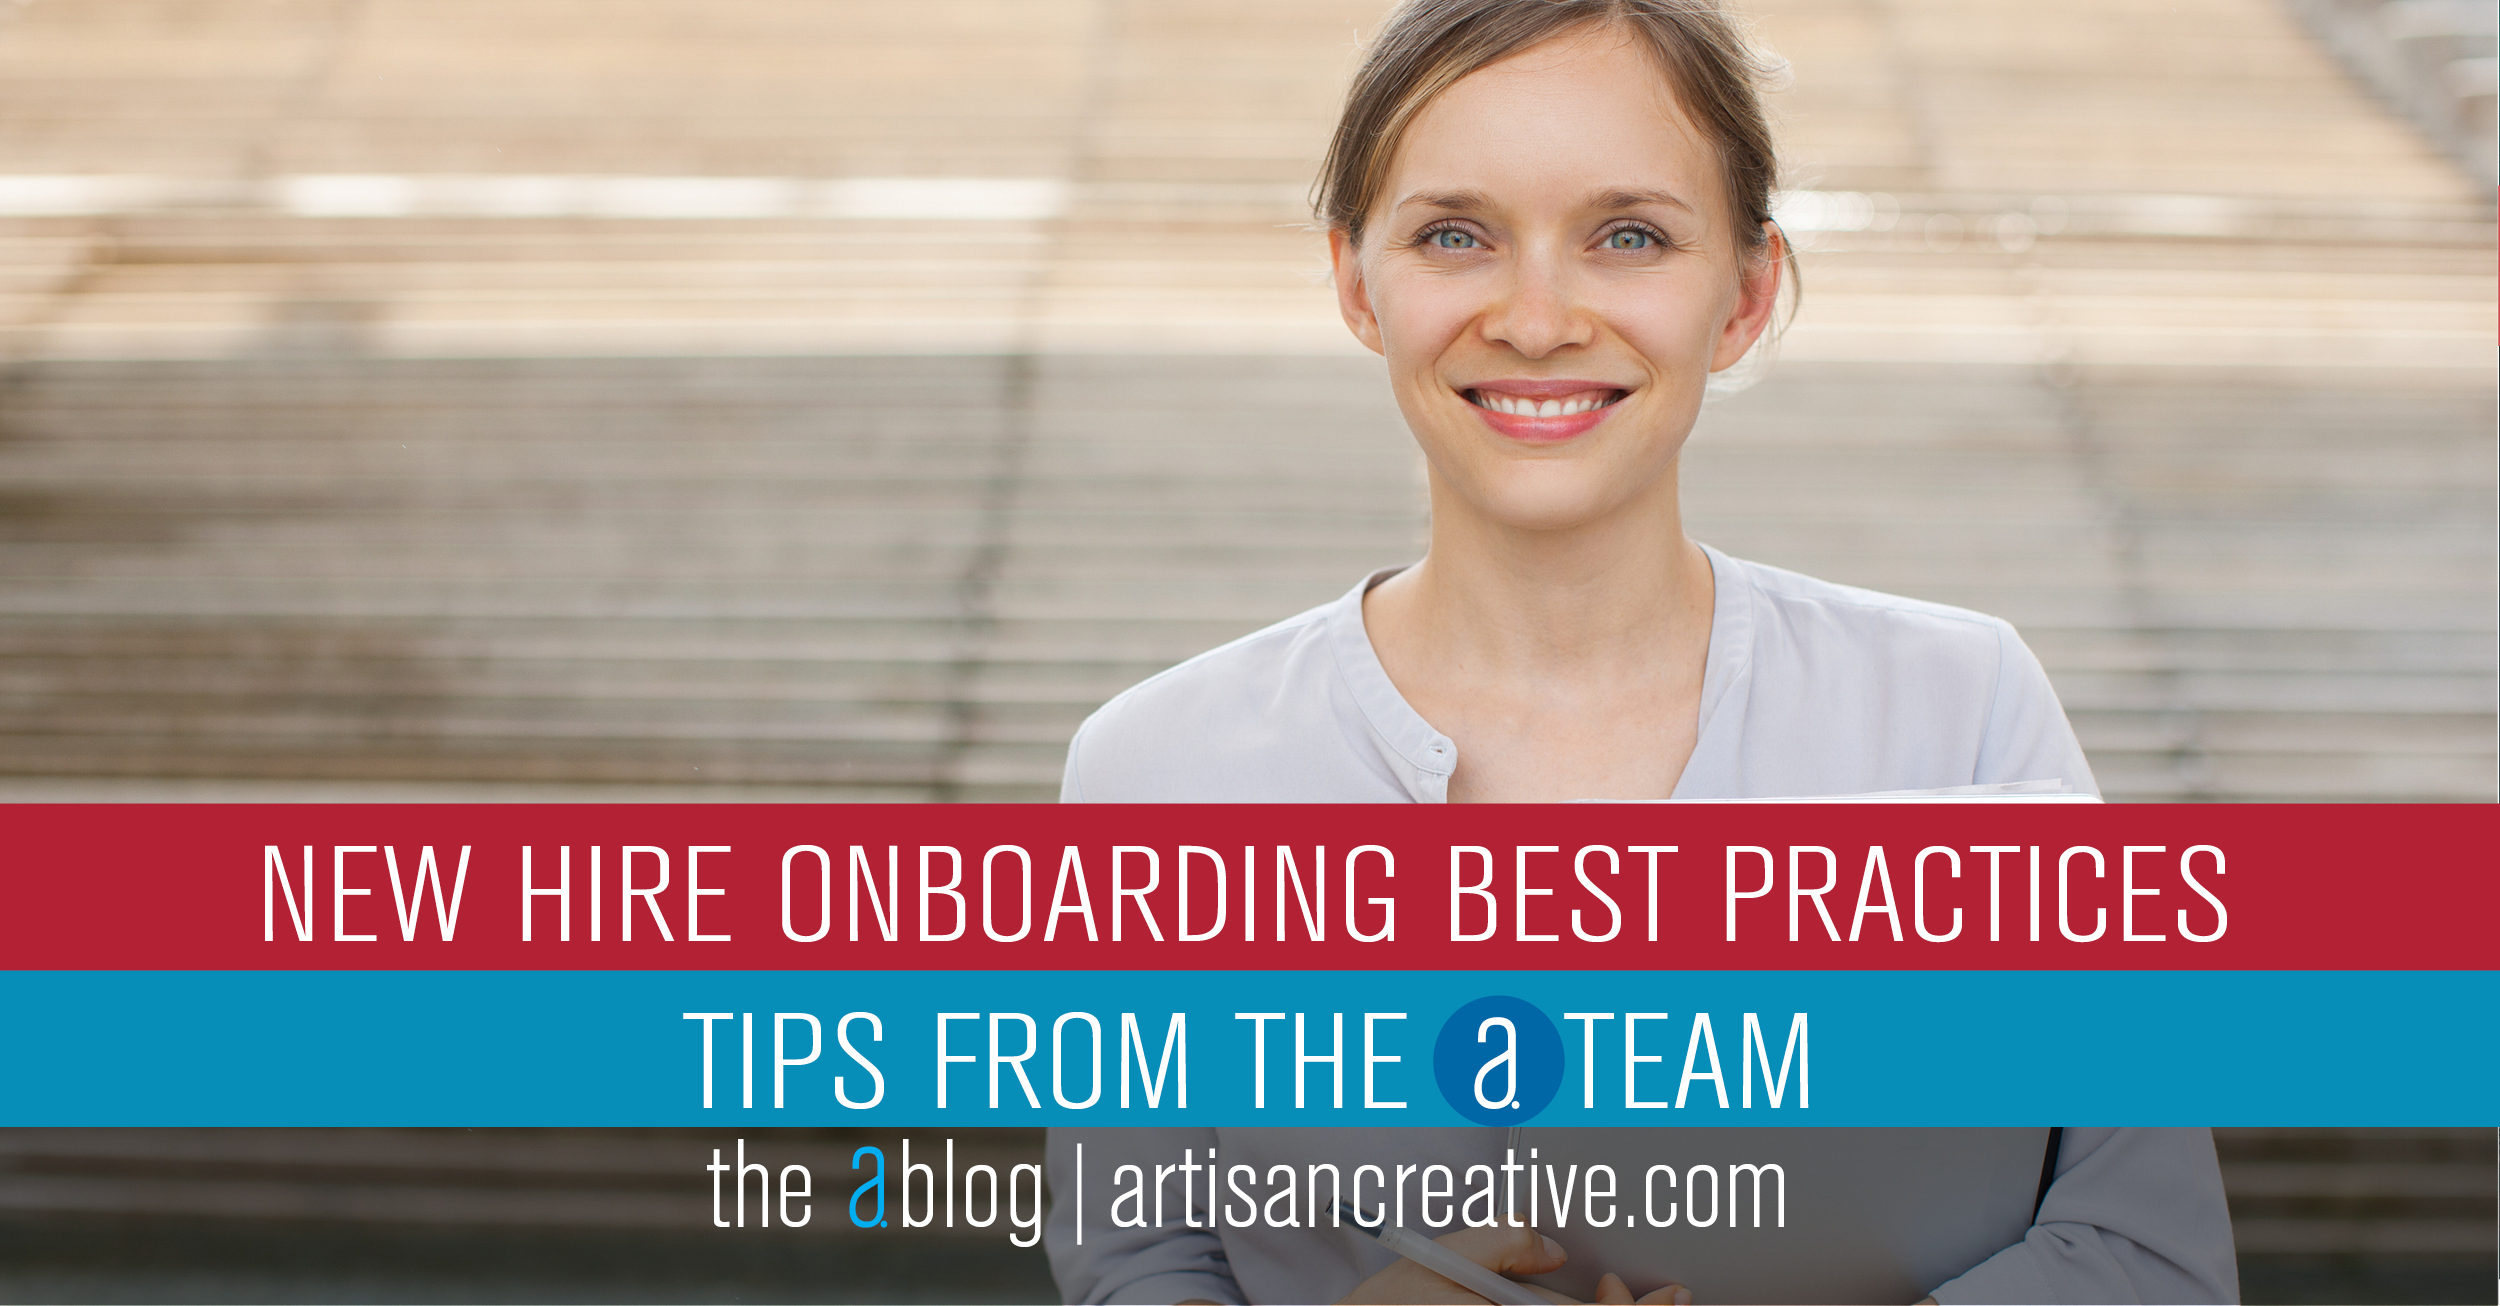 New Hire Onboarding Best Practices